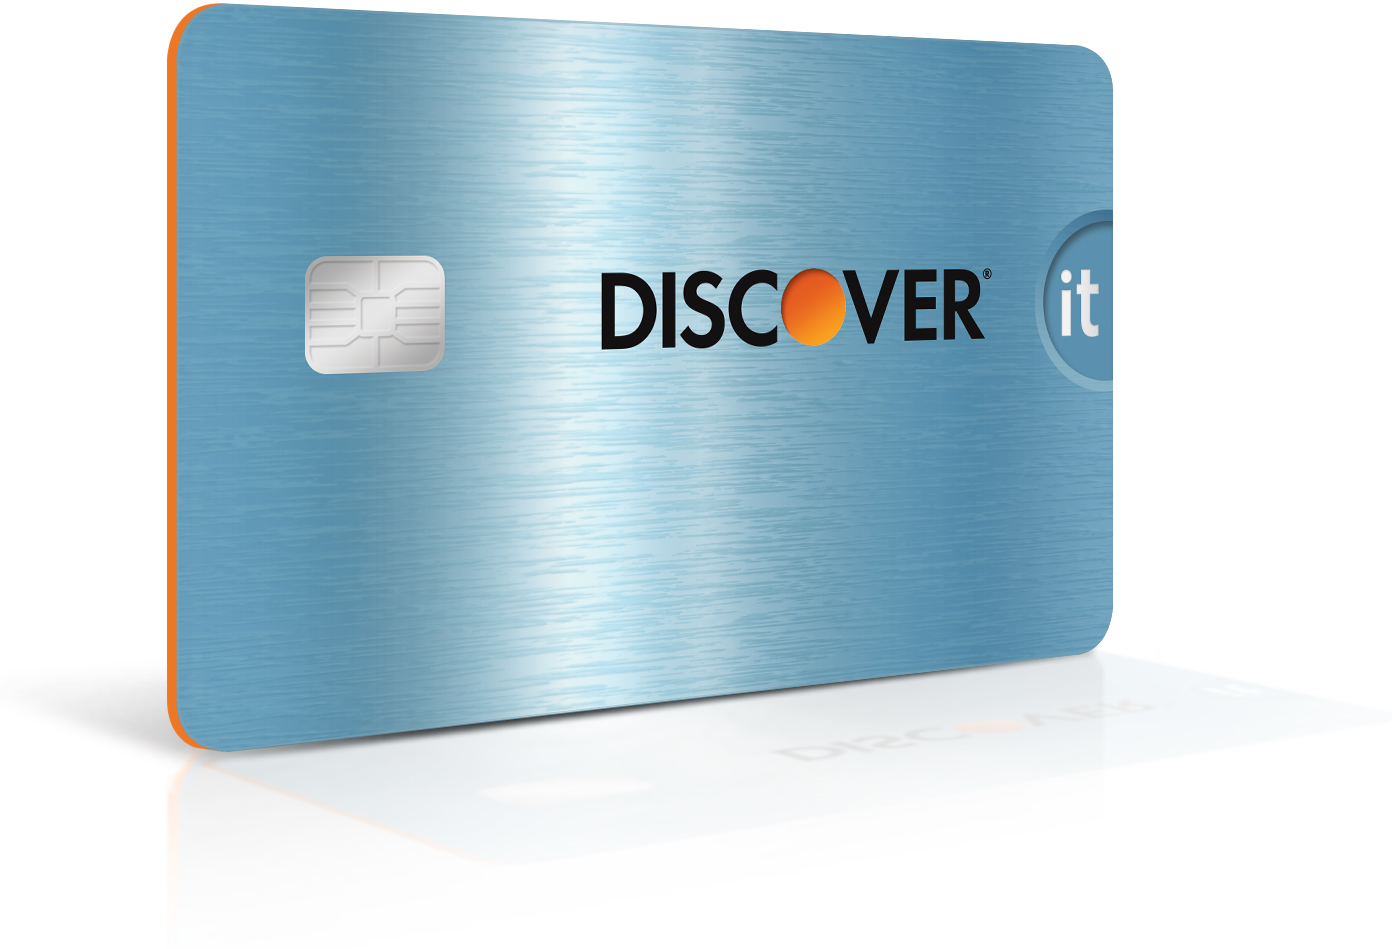 How Can I Add Money To My Discover Debit Card